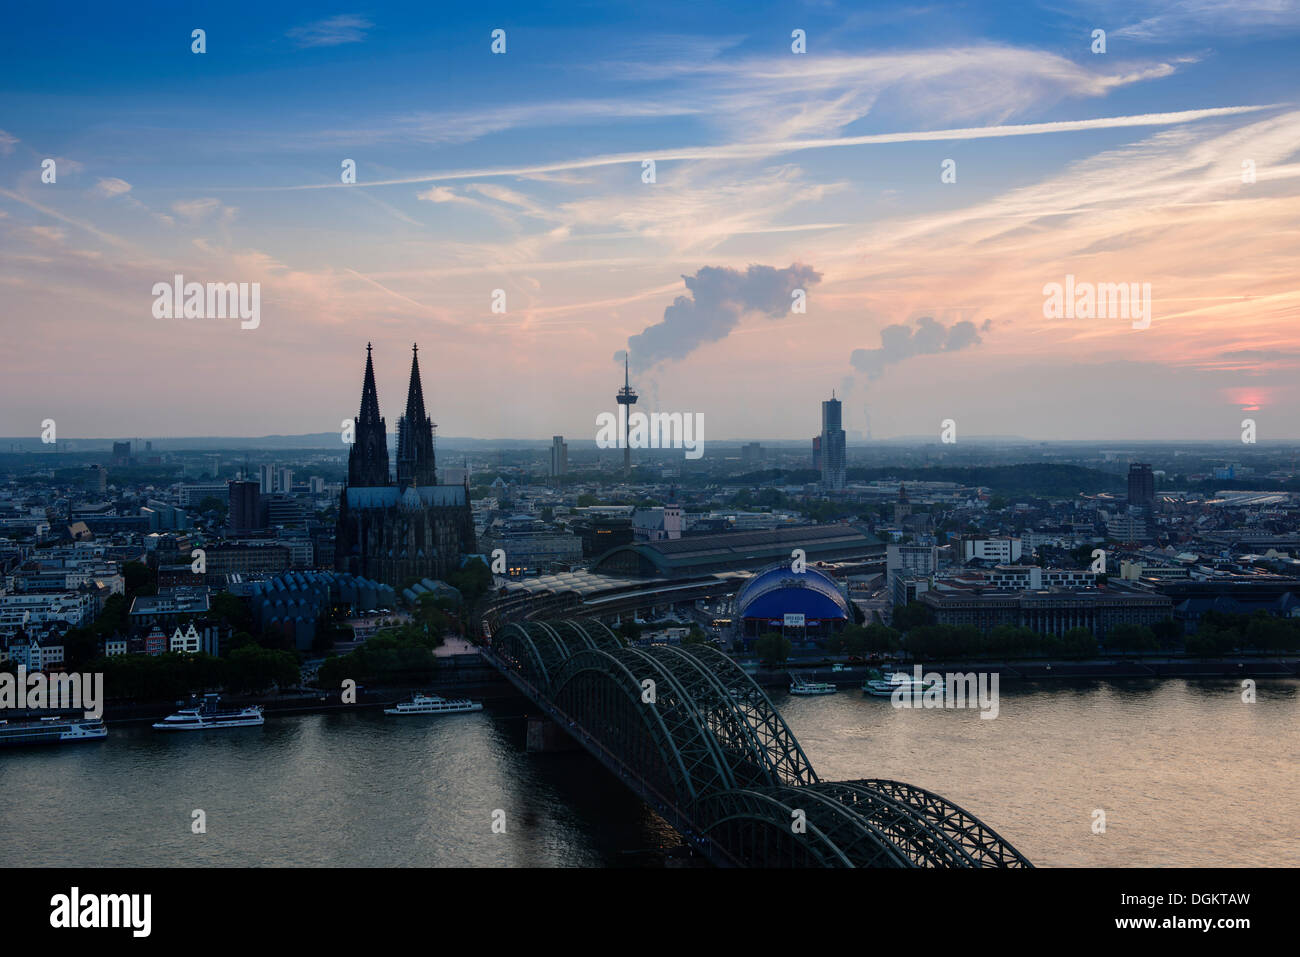 Cologne in the evening, dusk, view of Deutz Bridge, old town, Koelner Dom, Cologne Cathedral, Colonius and the Cologne Opera - Stock Image